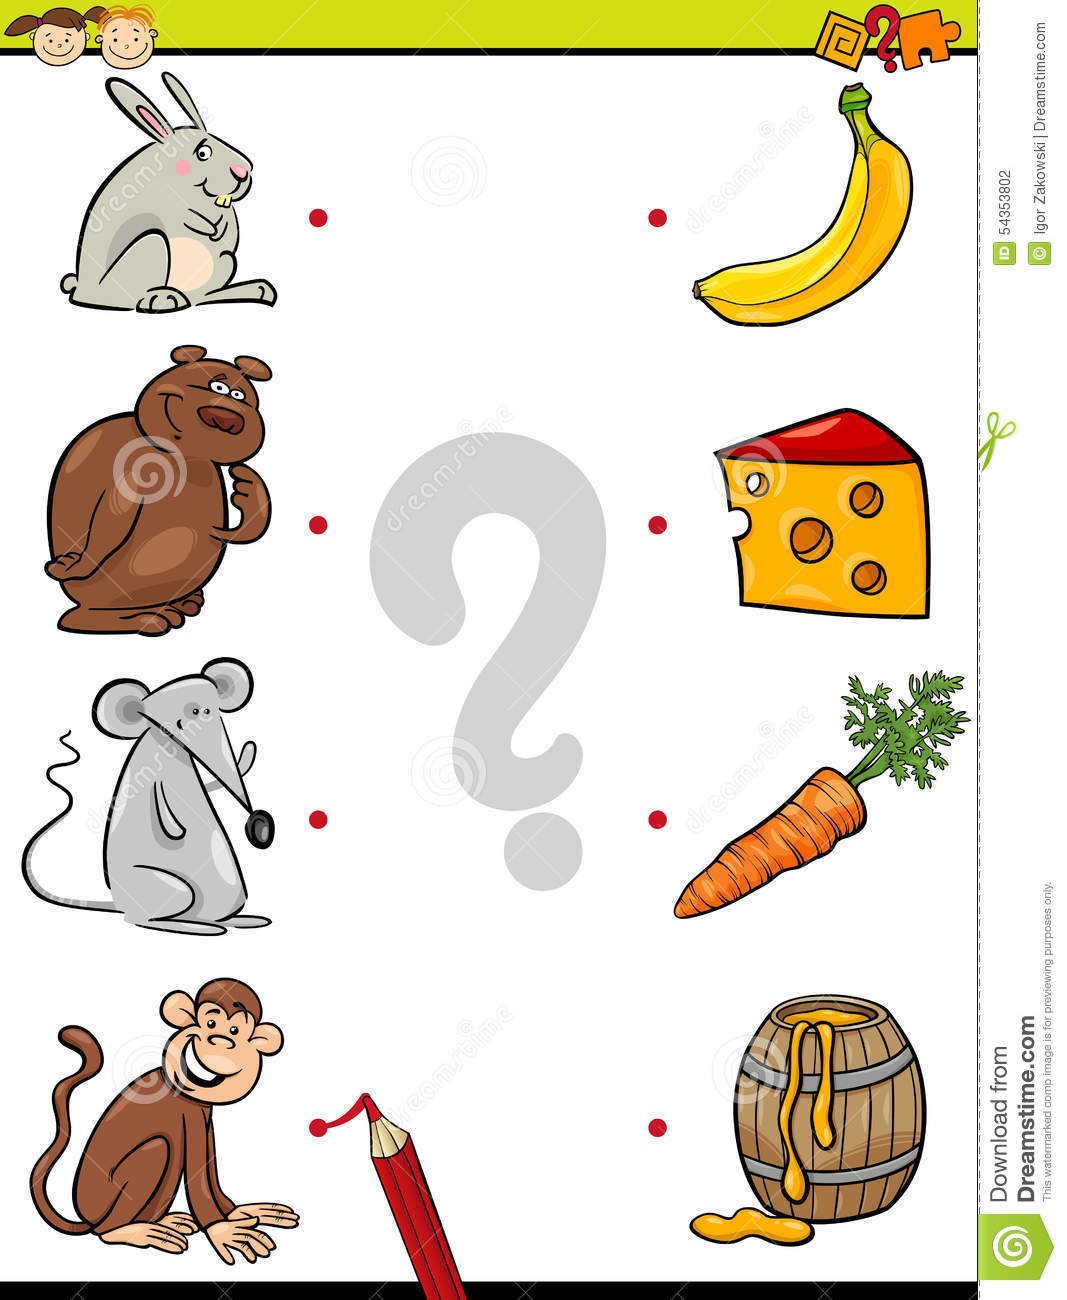 Stock Illustration Match Elements Education Game Cartoon Illustration Element Matching Preschool Children Animals Their Favorite Food Image54353802 on Kindergarten Time Worksheets For All Download And